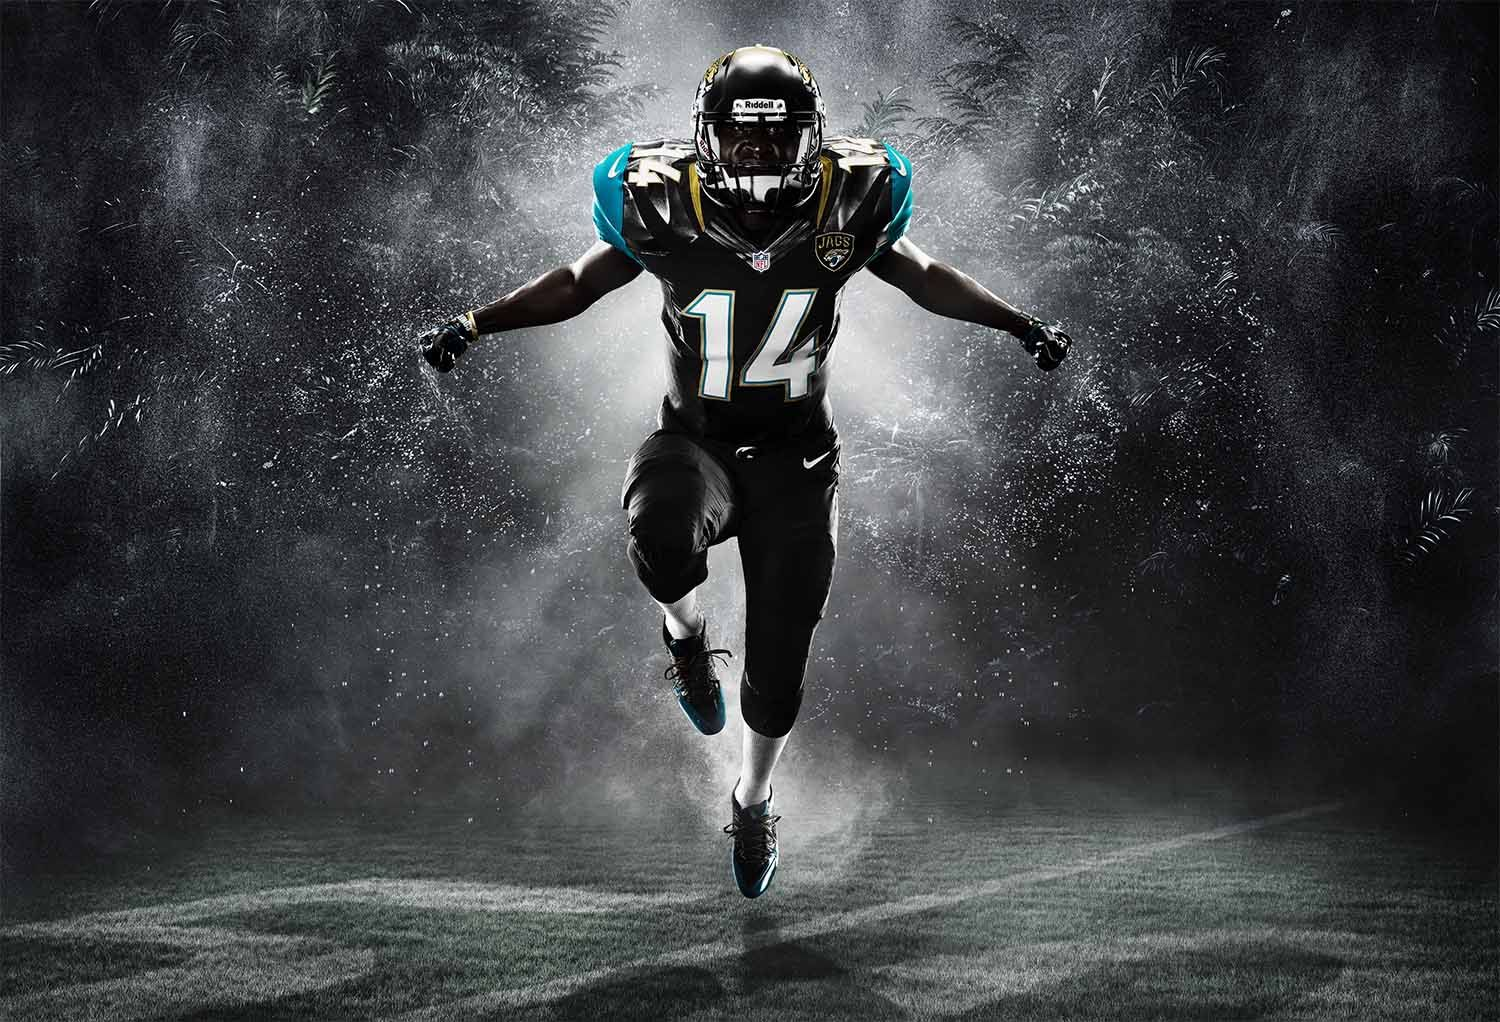 American football Wallpapers HD, Desktop Backgrounds, Images and ...